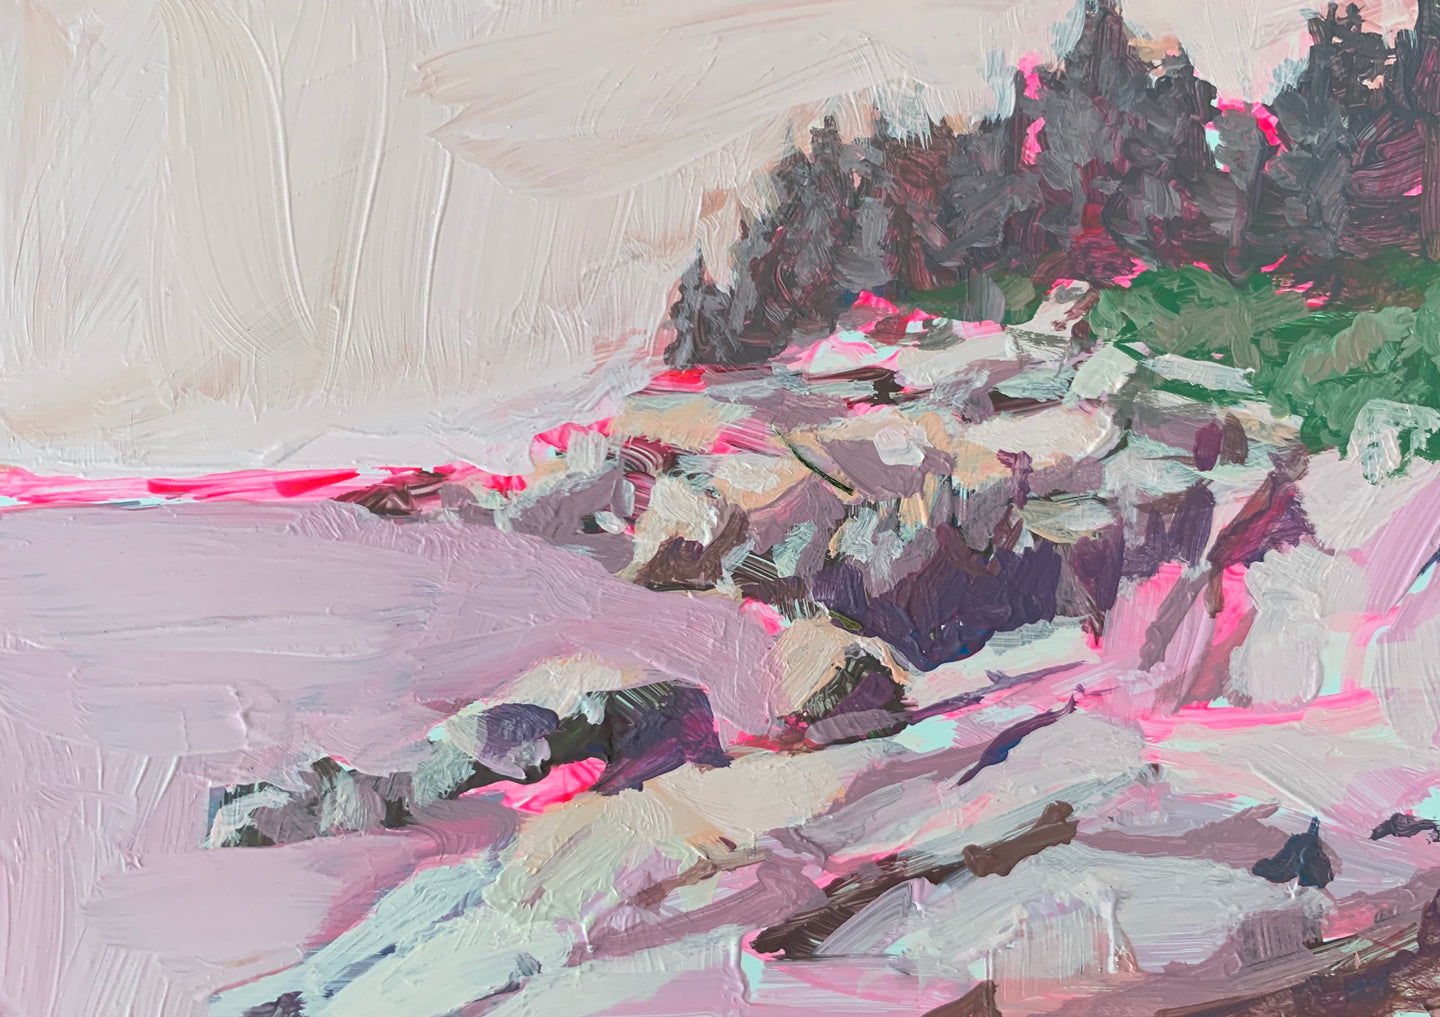 Pink Pebble Beach, 5